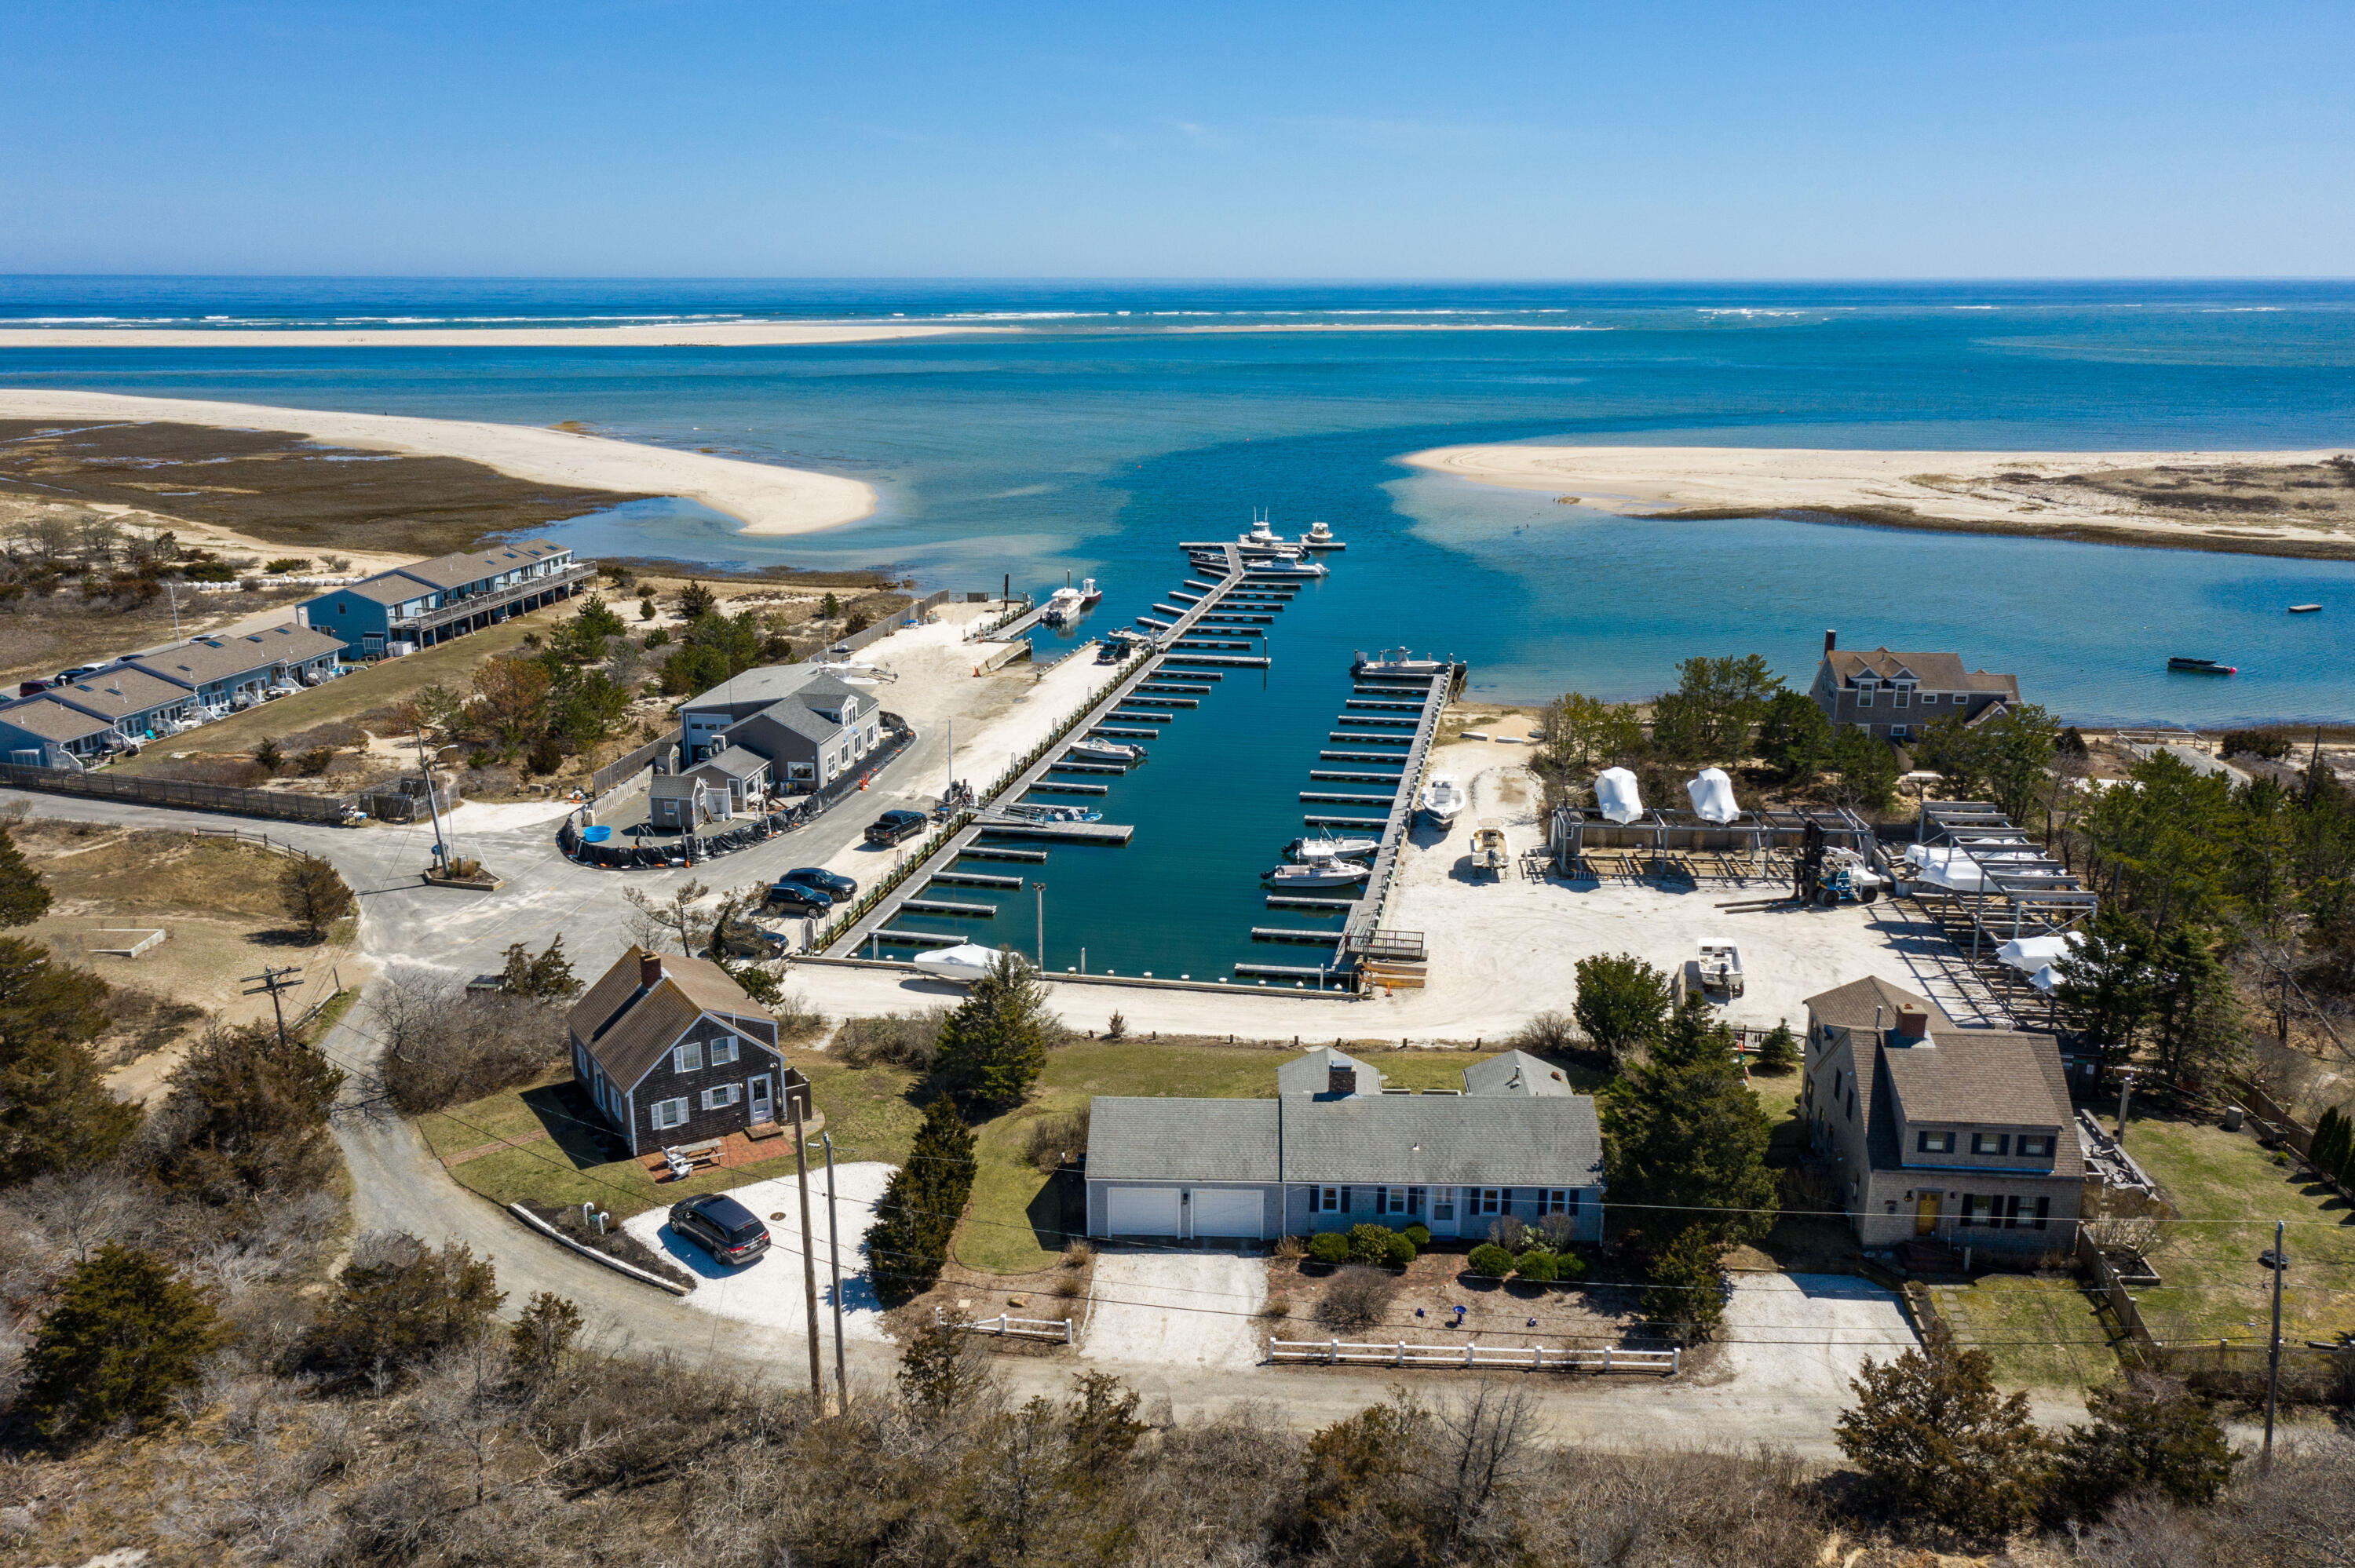 115 Seagull Road, Chatham MA, 02633 sales details